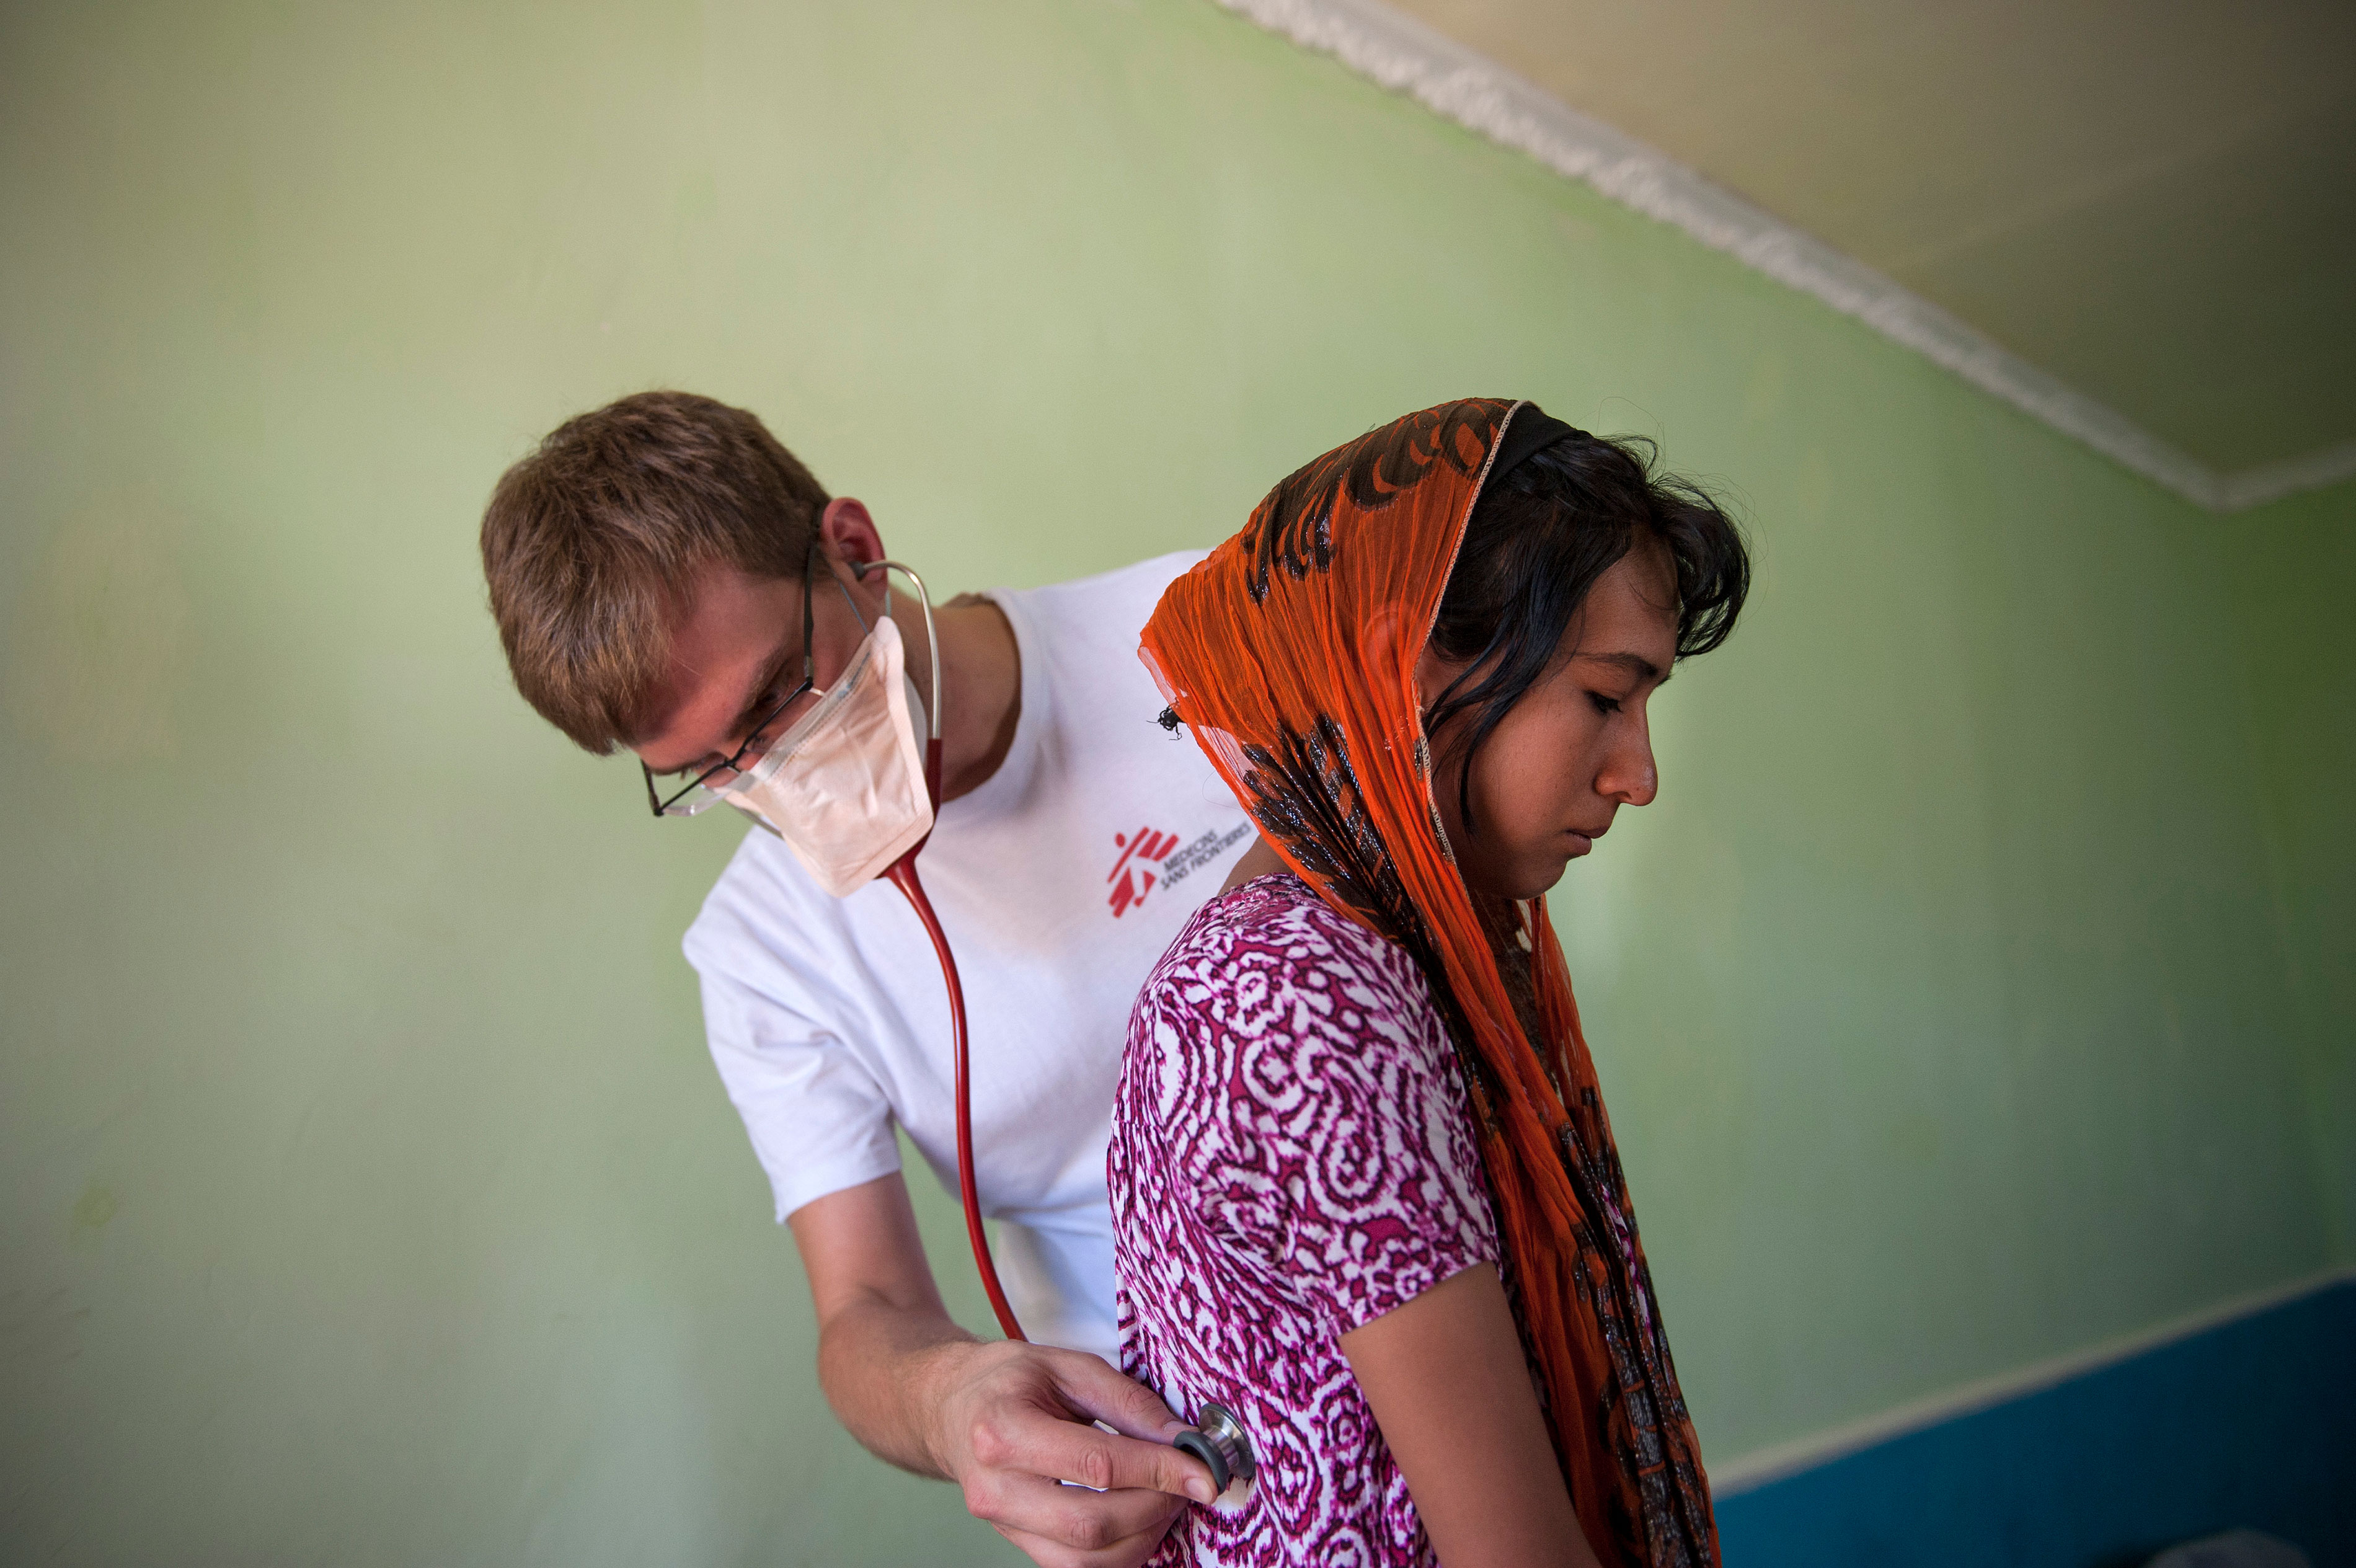 MSF doctor Christoph Höhn examines 16 year-old-Shahnoza in her family home. Shahnoza started MDR-TB treatment in October 2012 but was later diagnosed with XDR-TB. Since January 2013, she is on the right drug regimen, but she will need another 1,5 years of treatment.